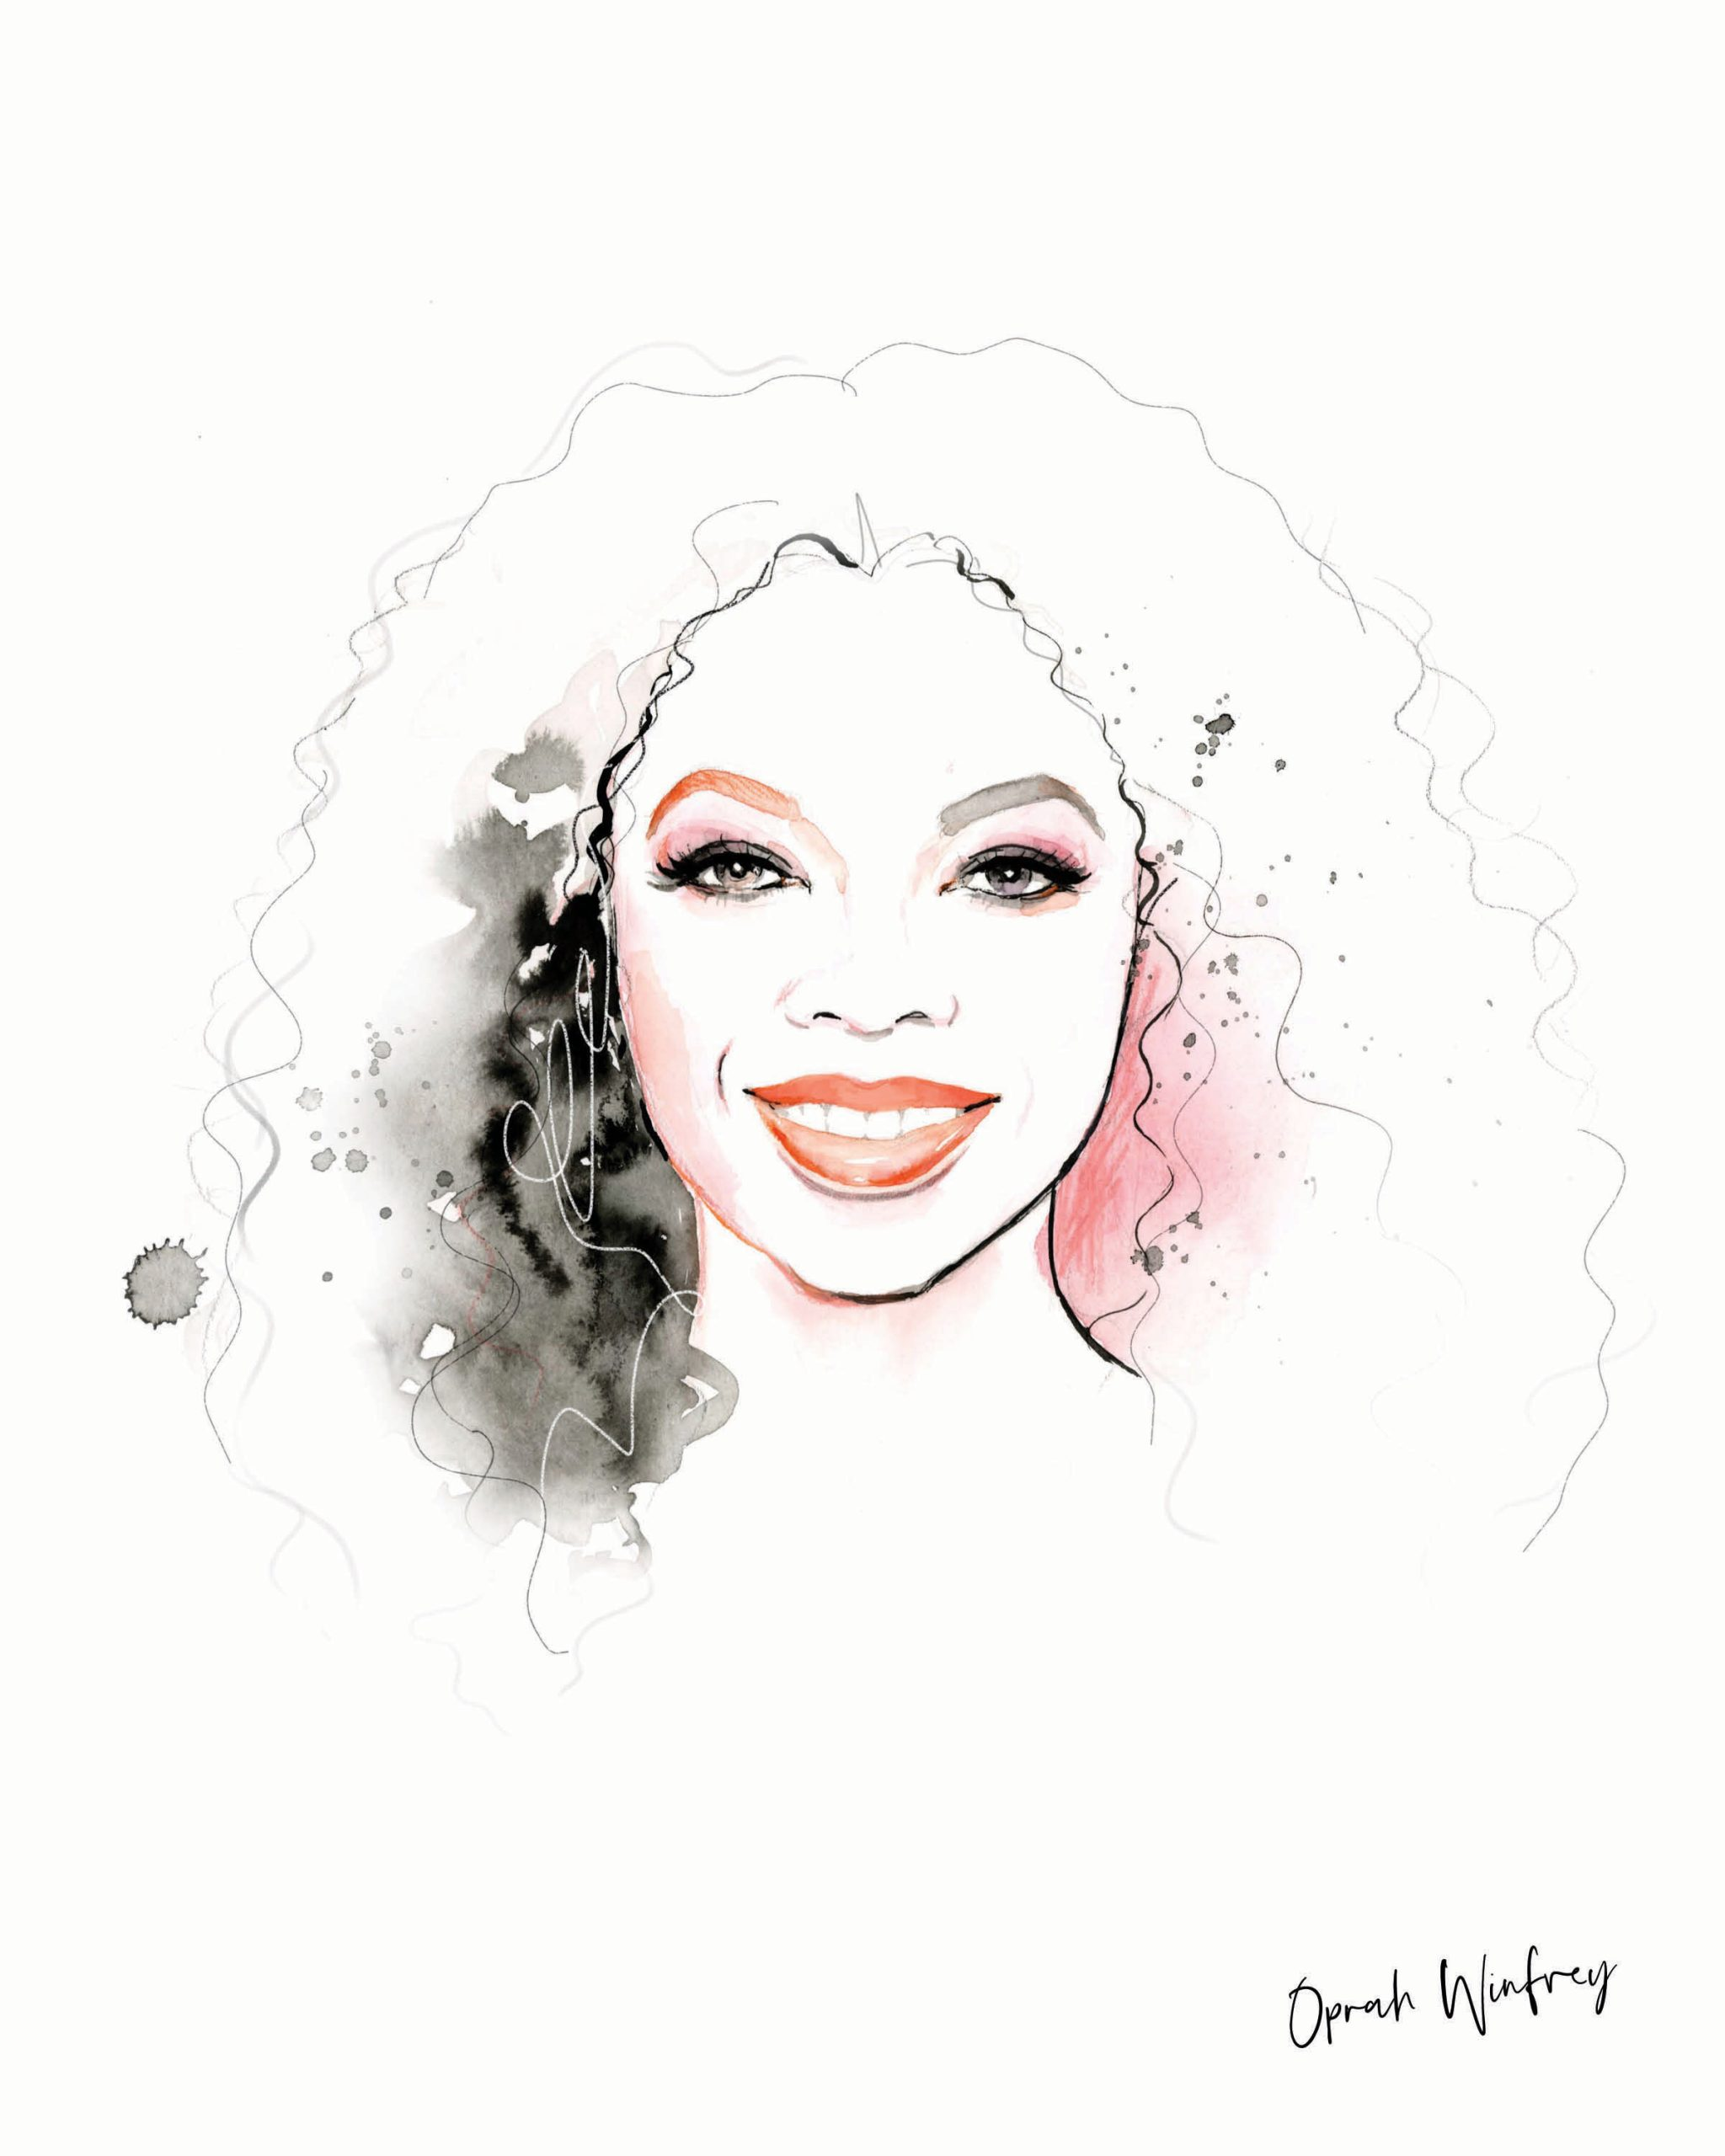 Oprah Artwork for kalika yap's Little Brand Book